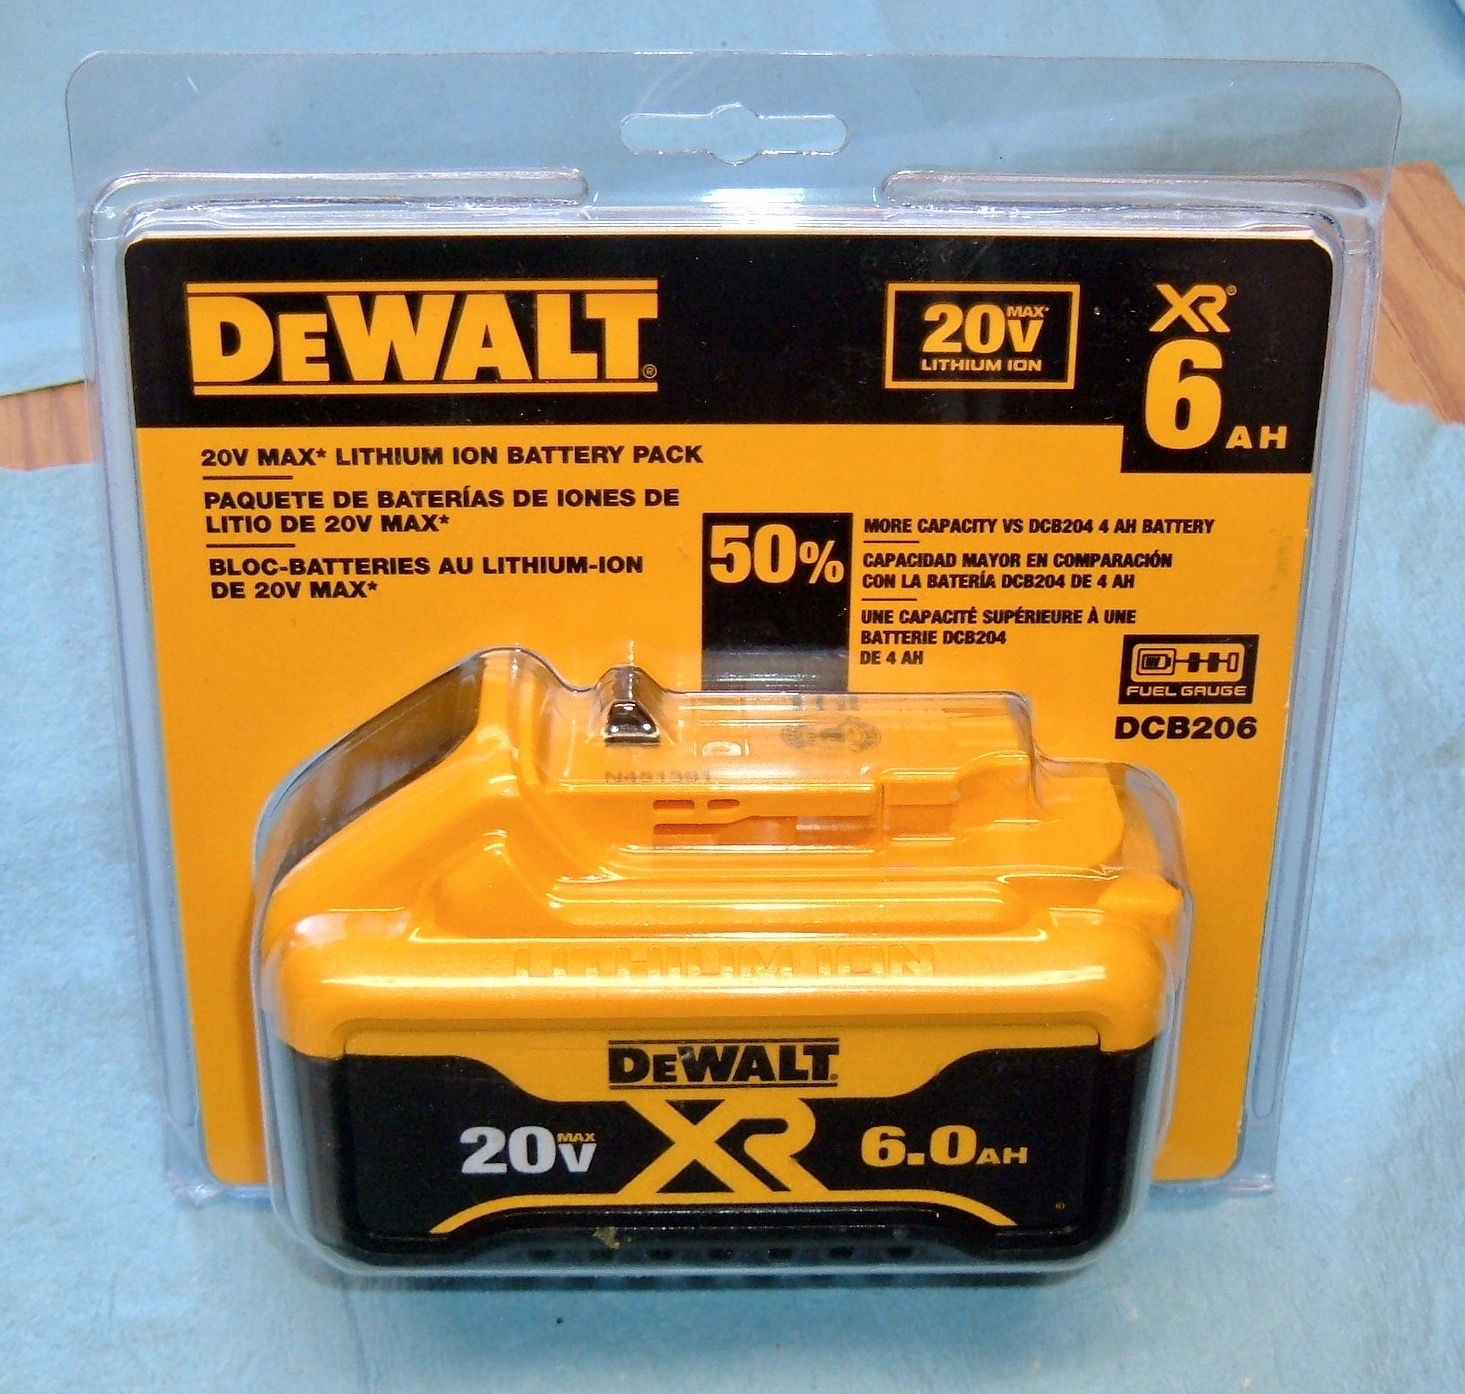 Syonyk's Project Blog: Dewalt 20V Max 6.0Ah Pack Teardown & Analysis - Black And Decker 20V Usb Pack Wiring Diagram